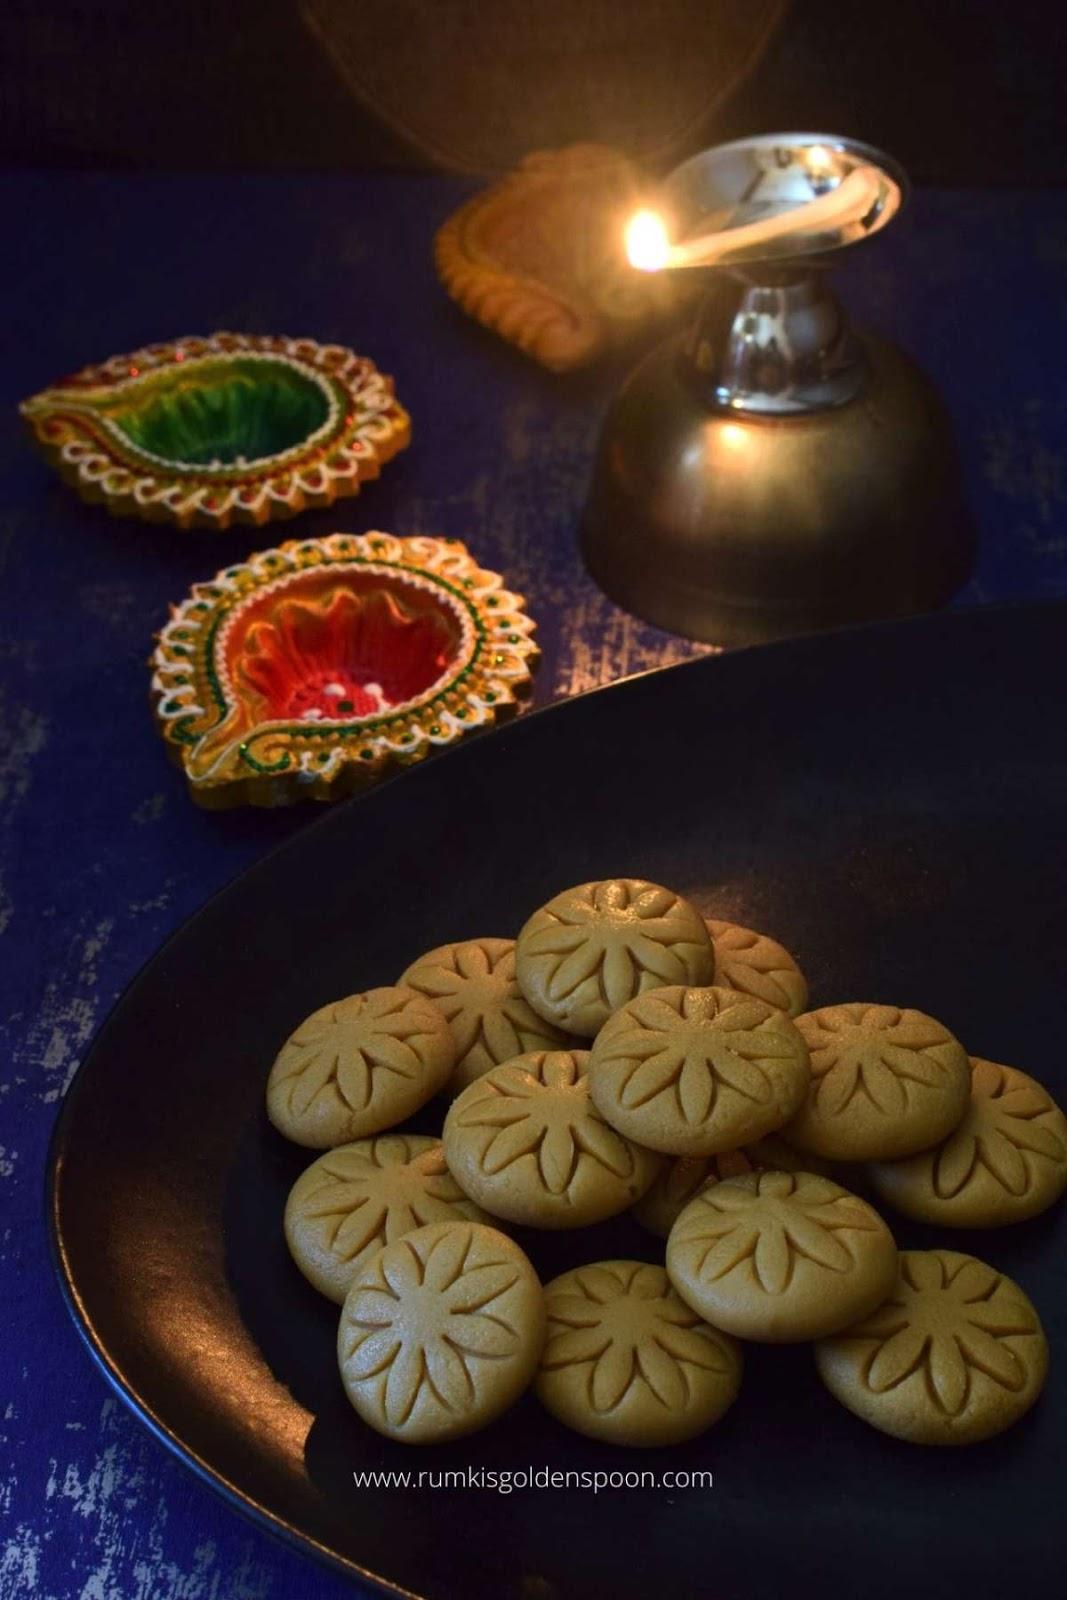 nolen gurer sandesh, nolen gur sandesh, sandesh sweet recipe, nolen gurer sondesh, gur sandesh recipe, gurer sandesh recipe, nolen gurer sandesh recipe, how to make nolen gurer sandesh, notun gurer sandesh, sandesh recipe, recipe of sandesh, recipe for sandesh, sandesh recipes, bengali sweet recipe, bengali sandesh recipe, sandesh bengali sweet recipe, bengali sweet recipes with milk, jaggery sweet recipes, sweet recipes with jaggery, patali gur recipes, jaggery sweet, sweets with jaggery, nolen gur recipe, Rumki's Golden Spoon